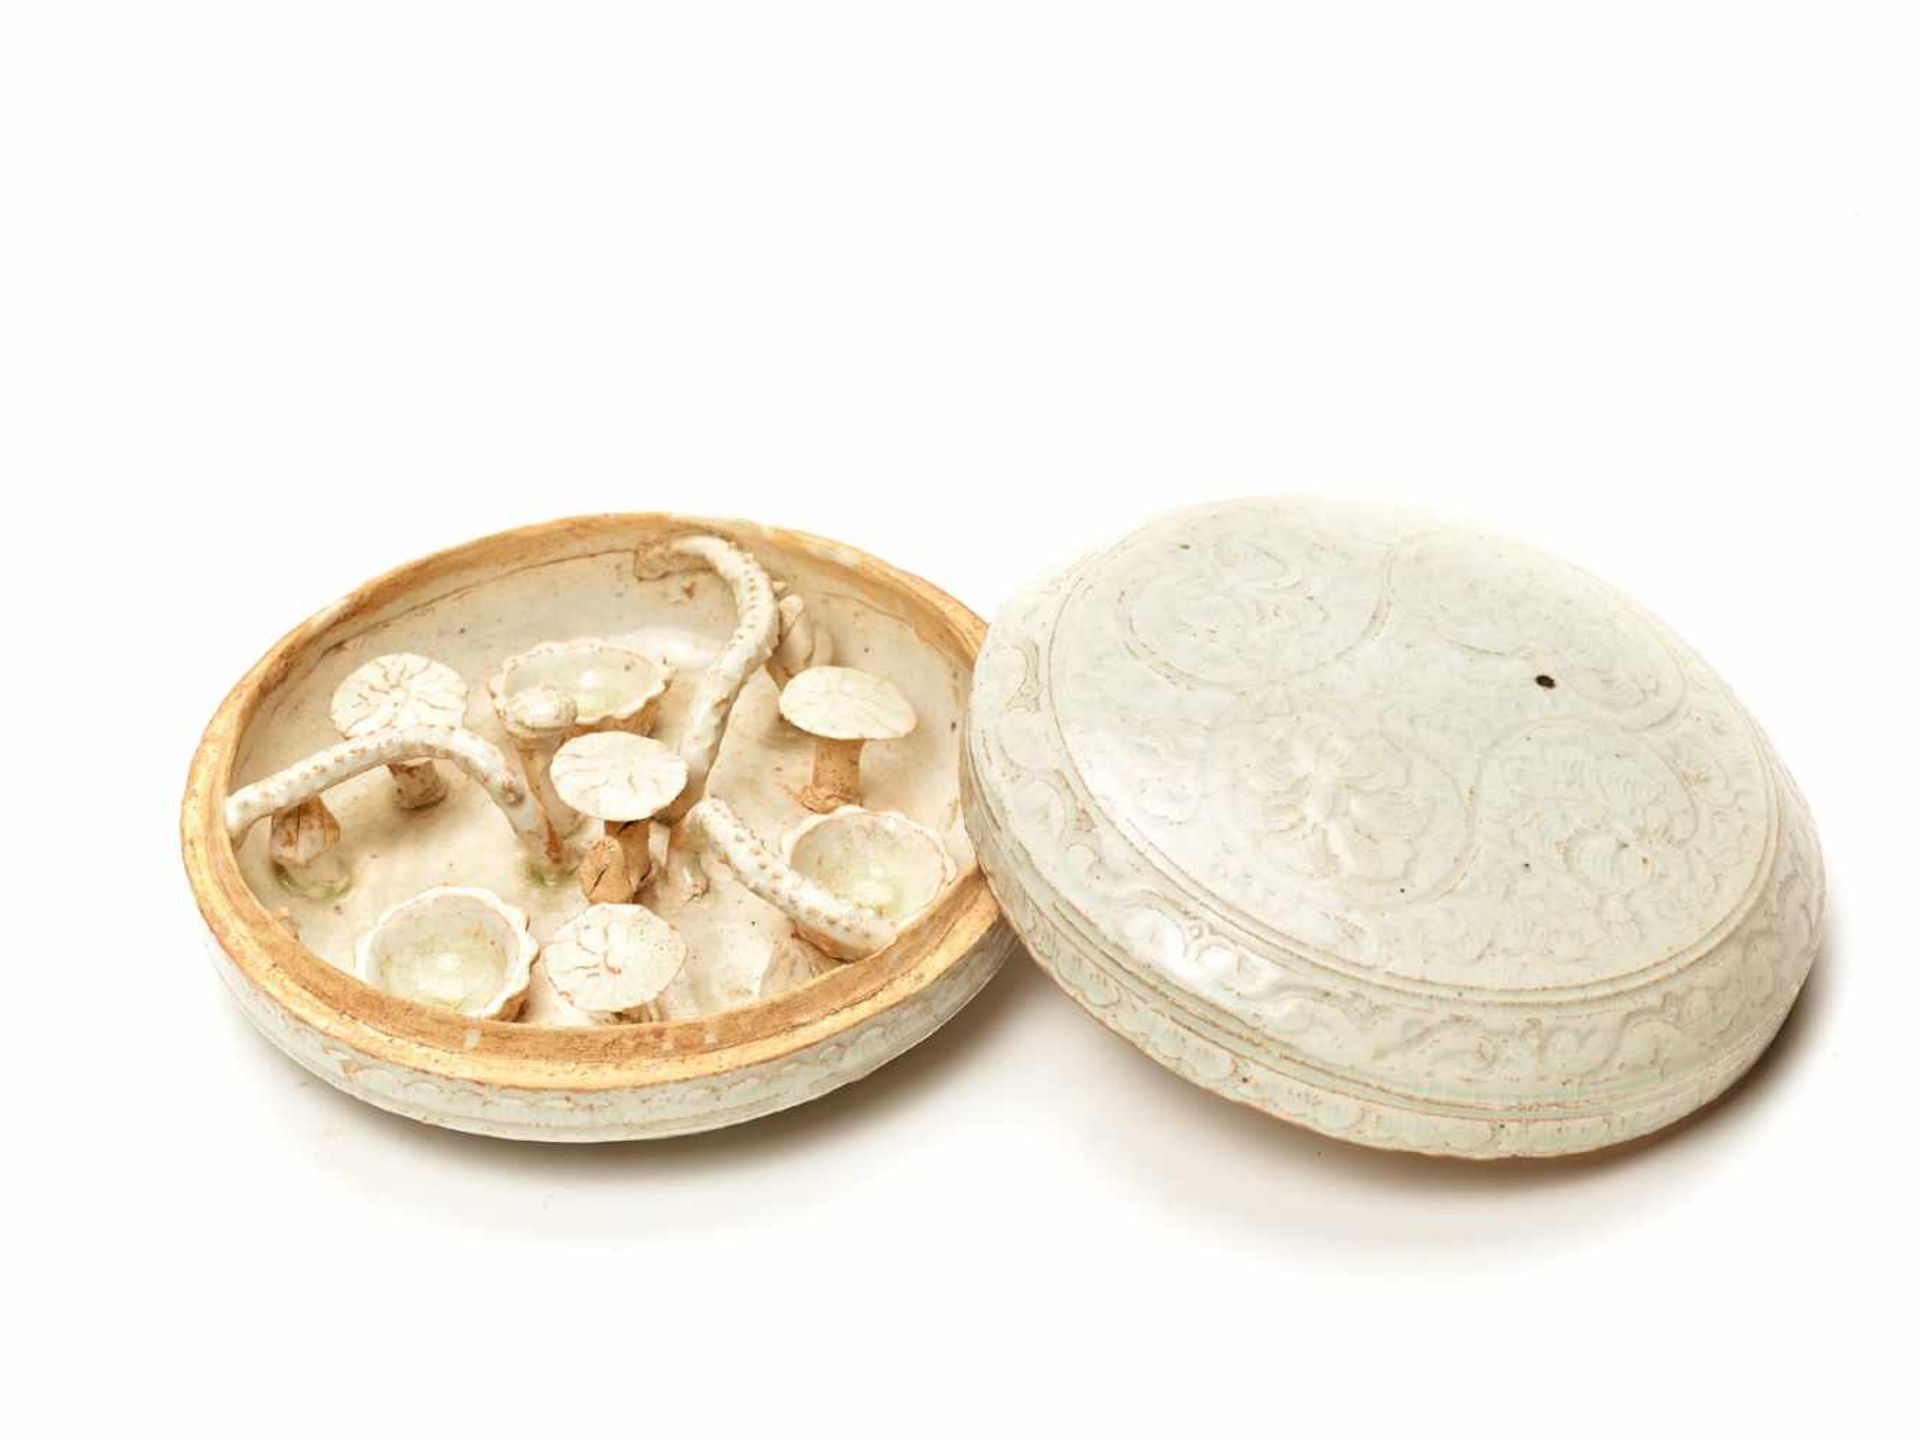 Los 410 - A QINGBAI MOLDED CERAMIC BOX AND COVER, SONG TO MING DYNASTY